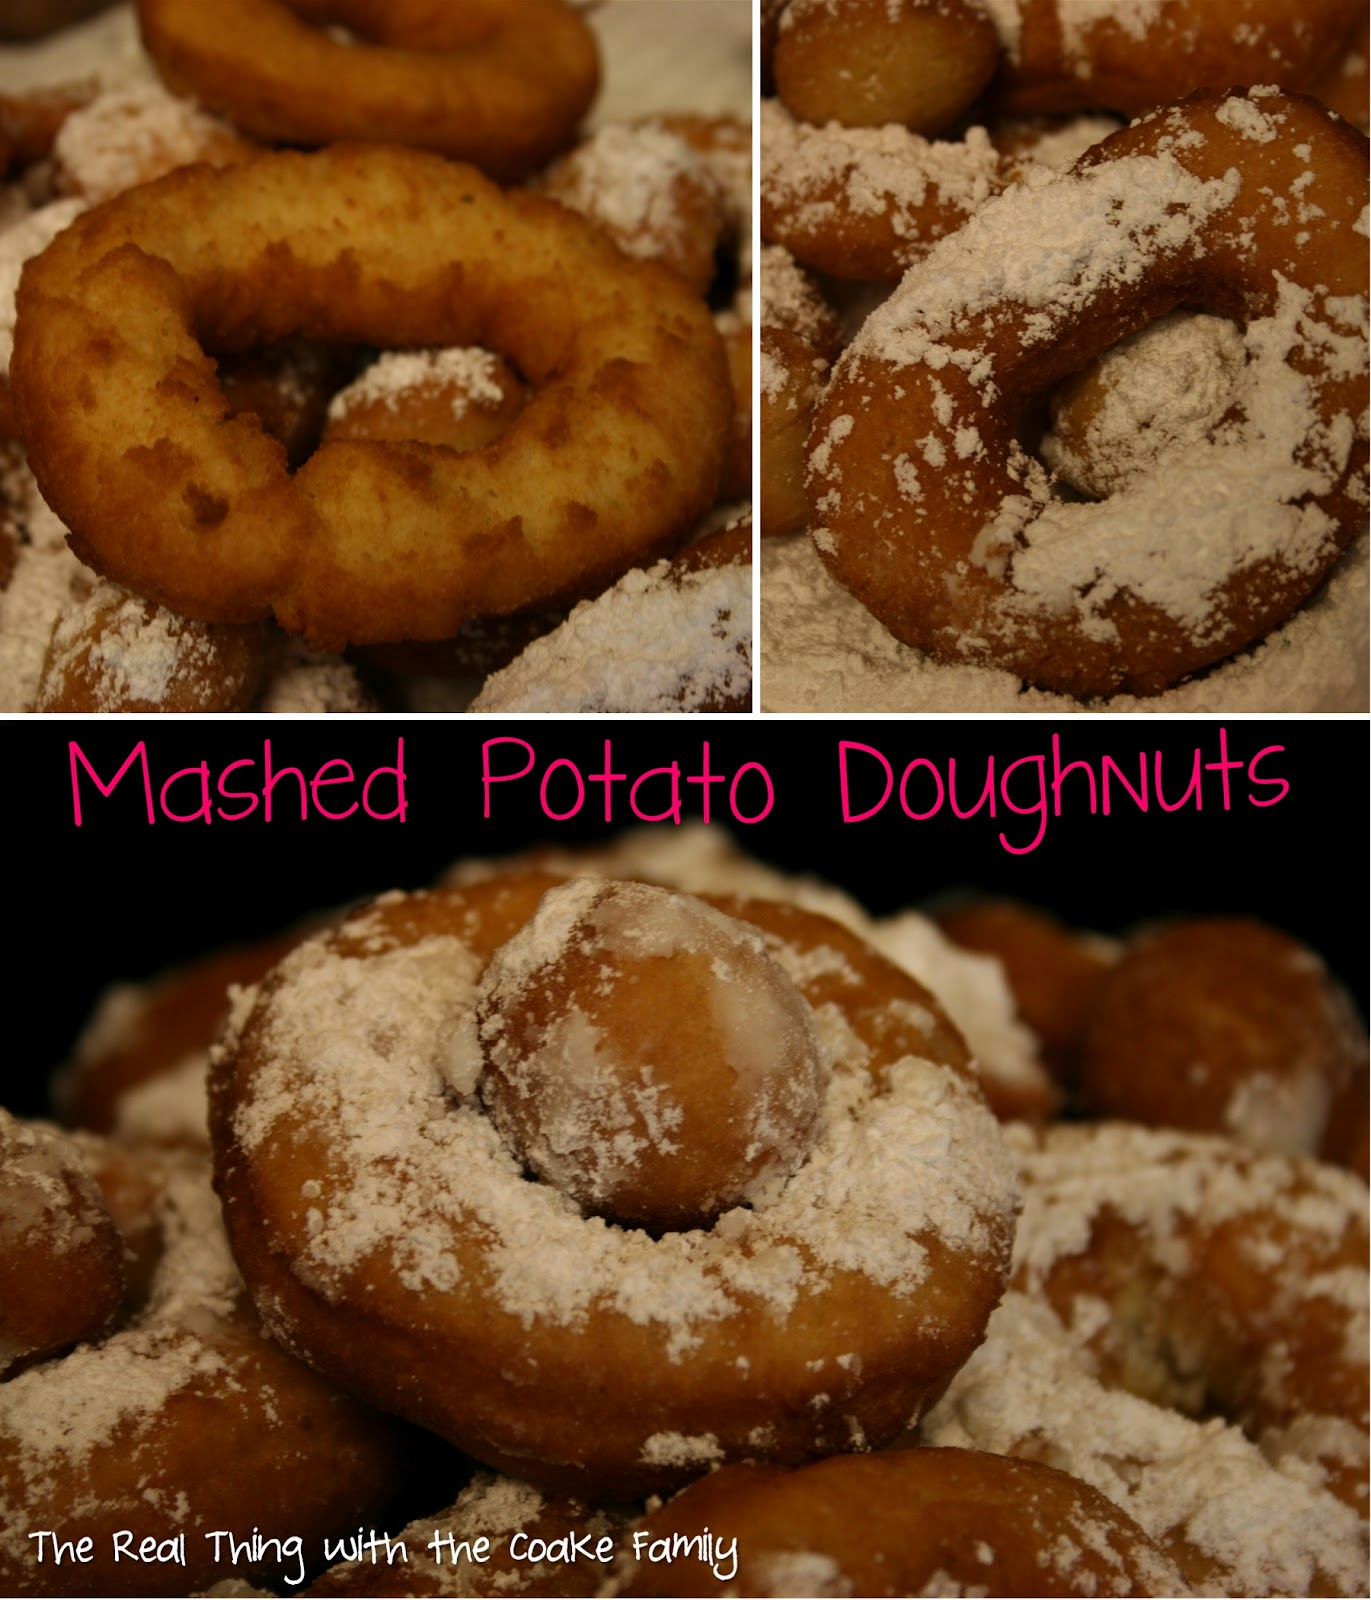 Mashed Potato Doughnuts (Recipe) - The Real Thing with the Coake ...